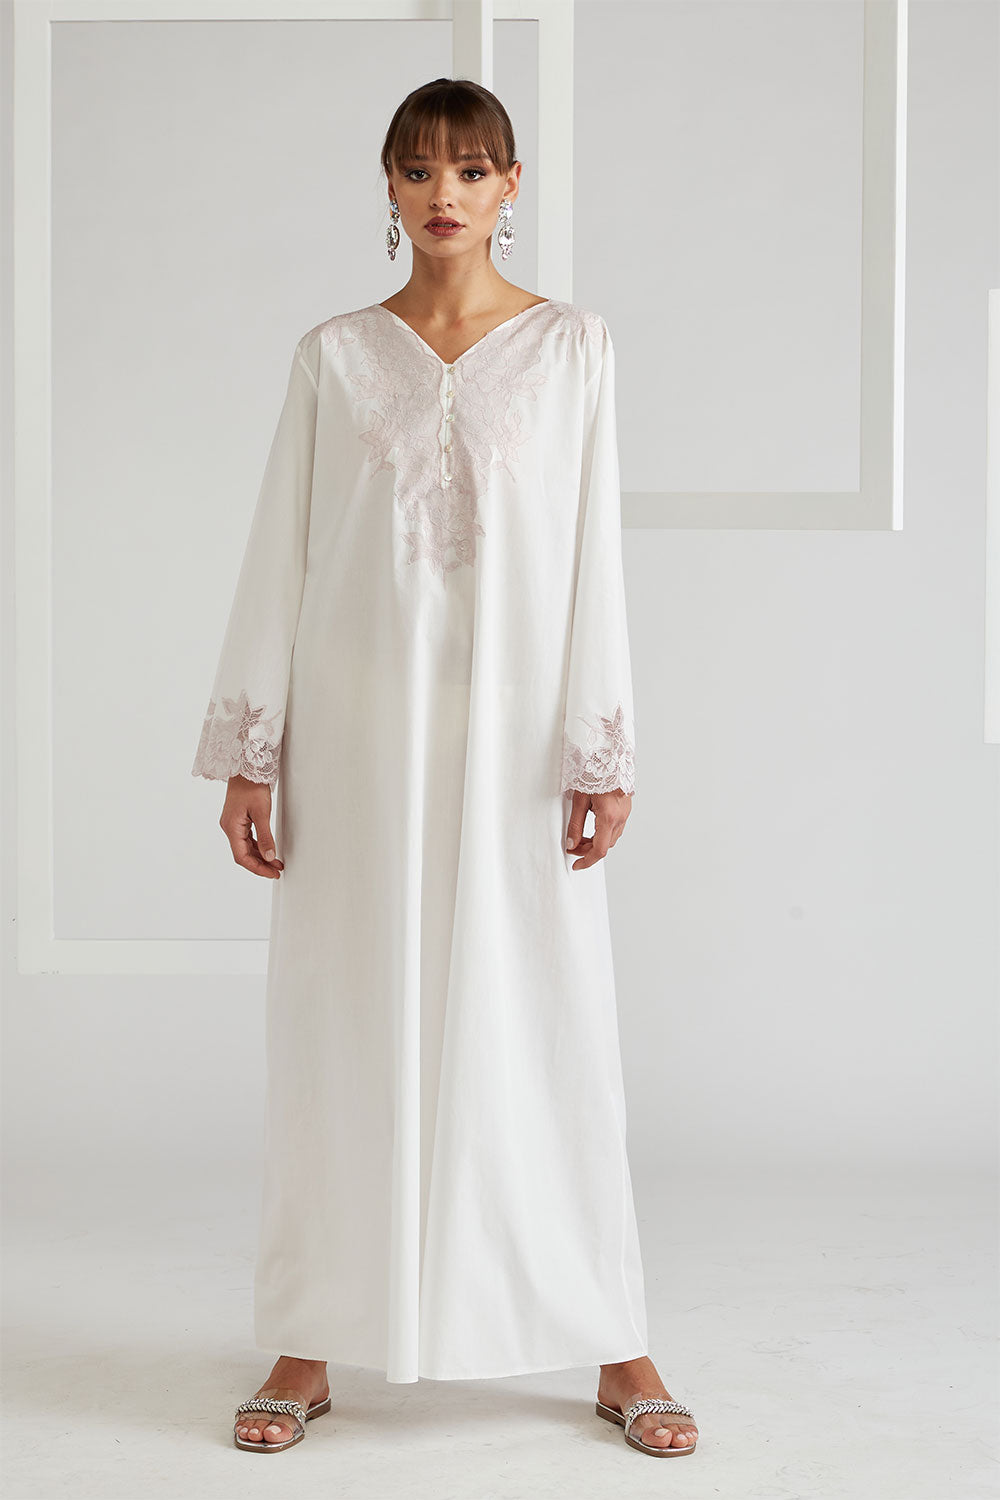 Cotton Poplin Dress - Big Rose ( Powder) Off White